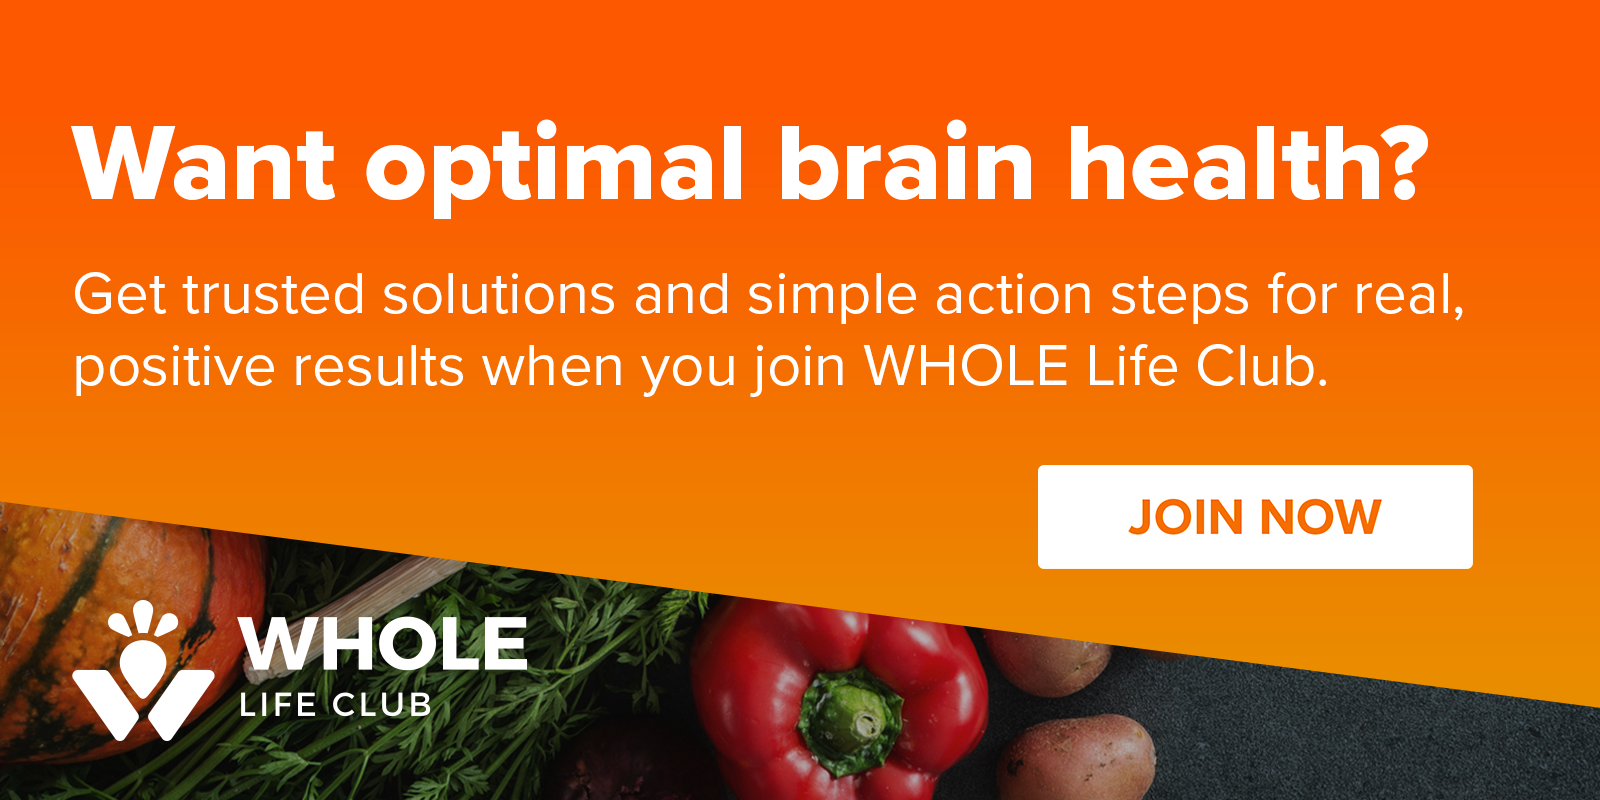 Join our online membership community, WHOLE Life Club for trusted solutions and action steps to optimize your brain health.